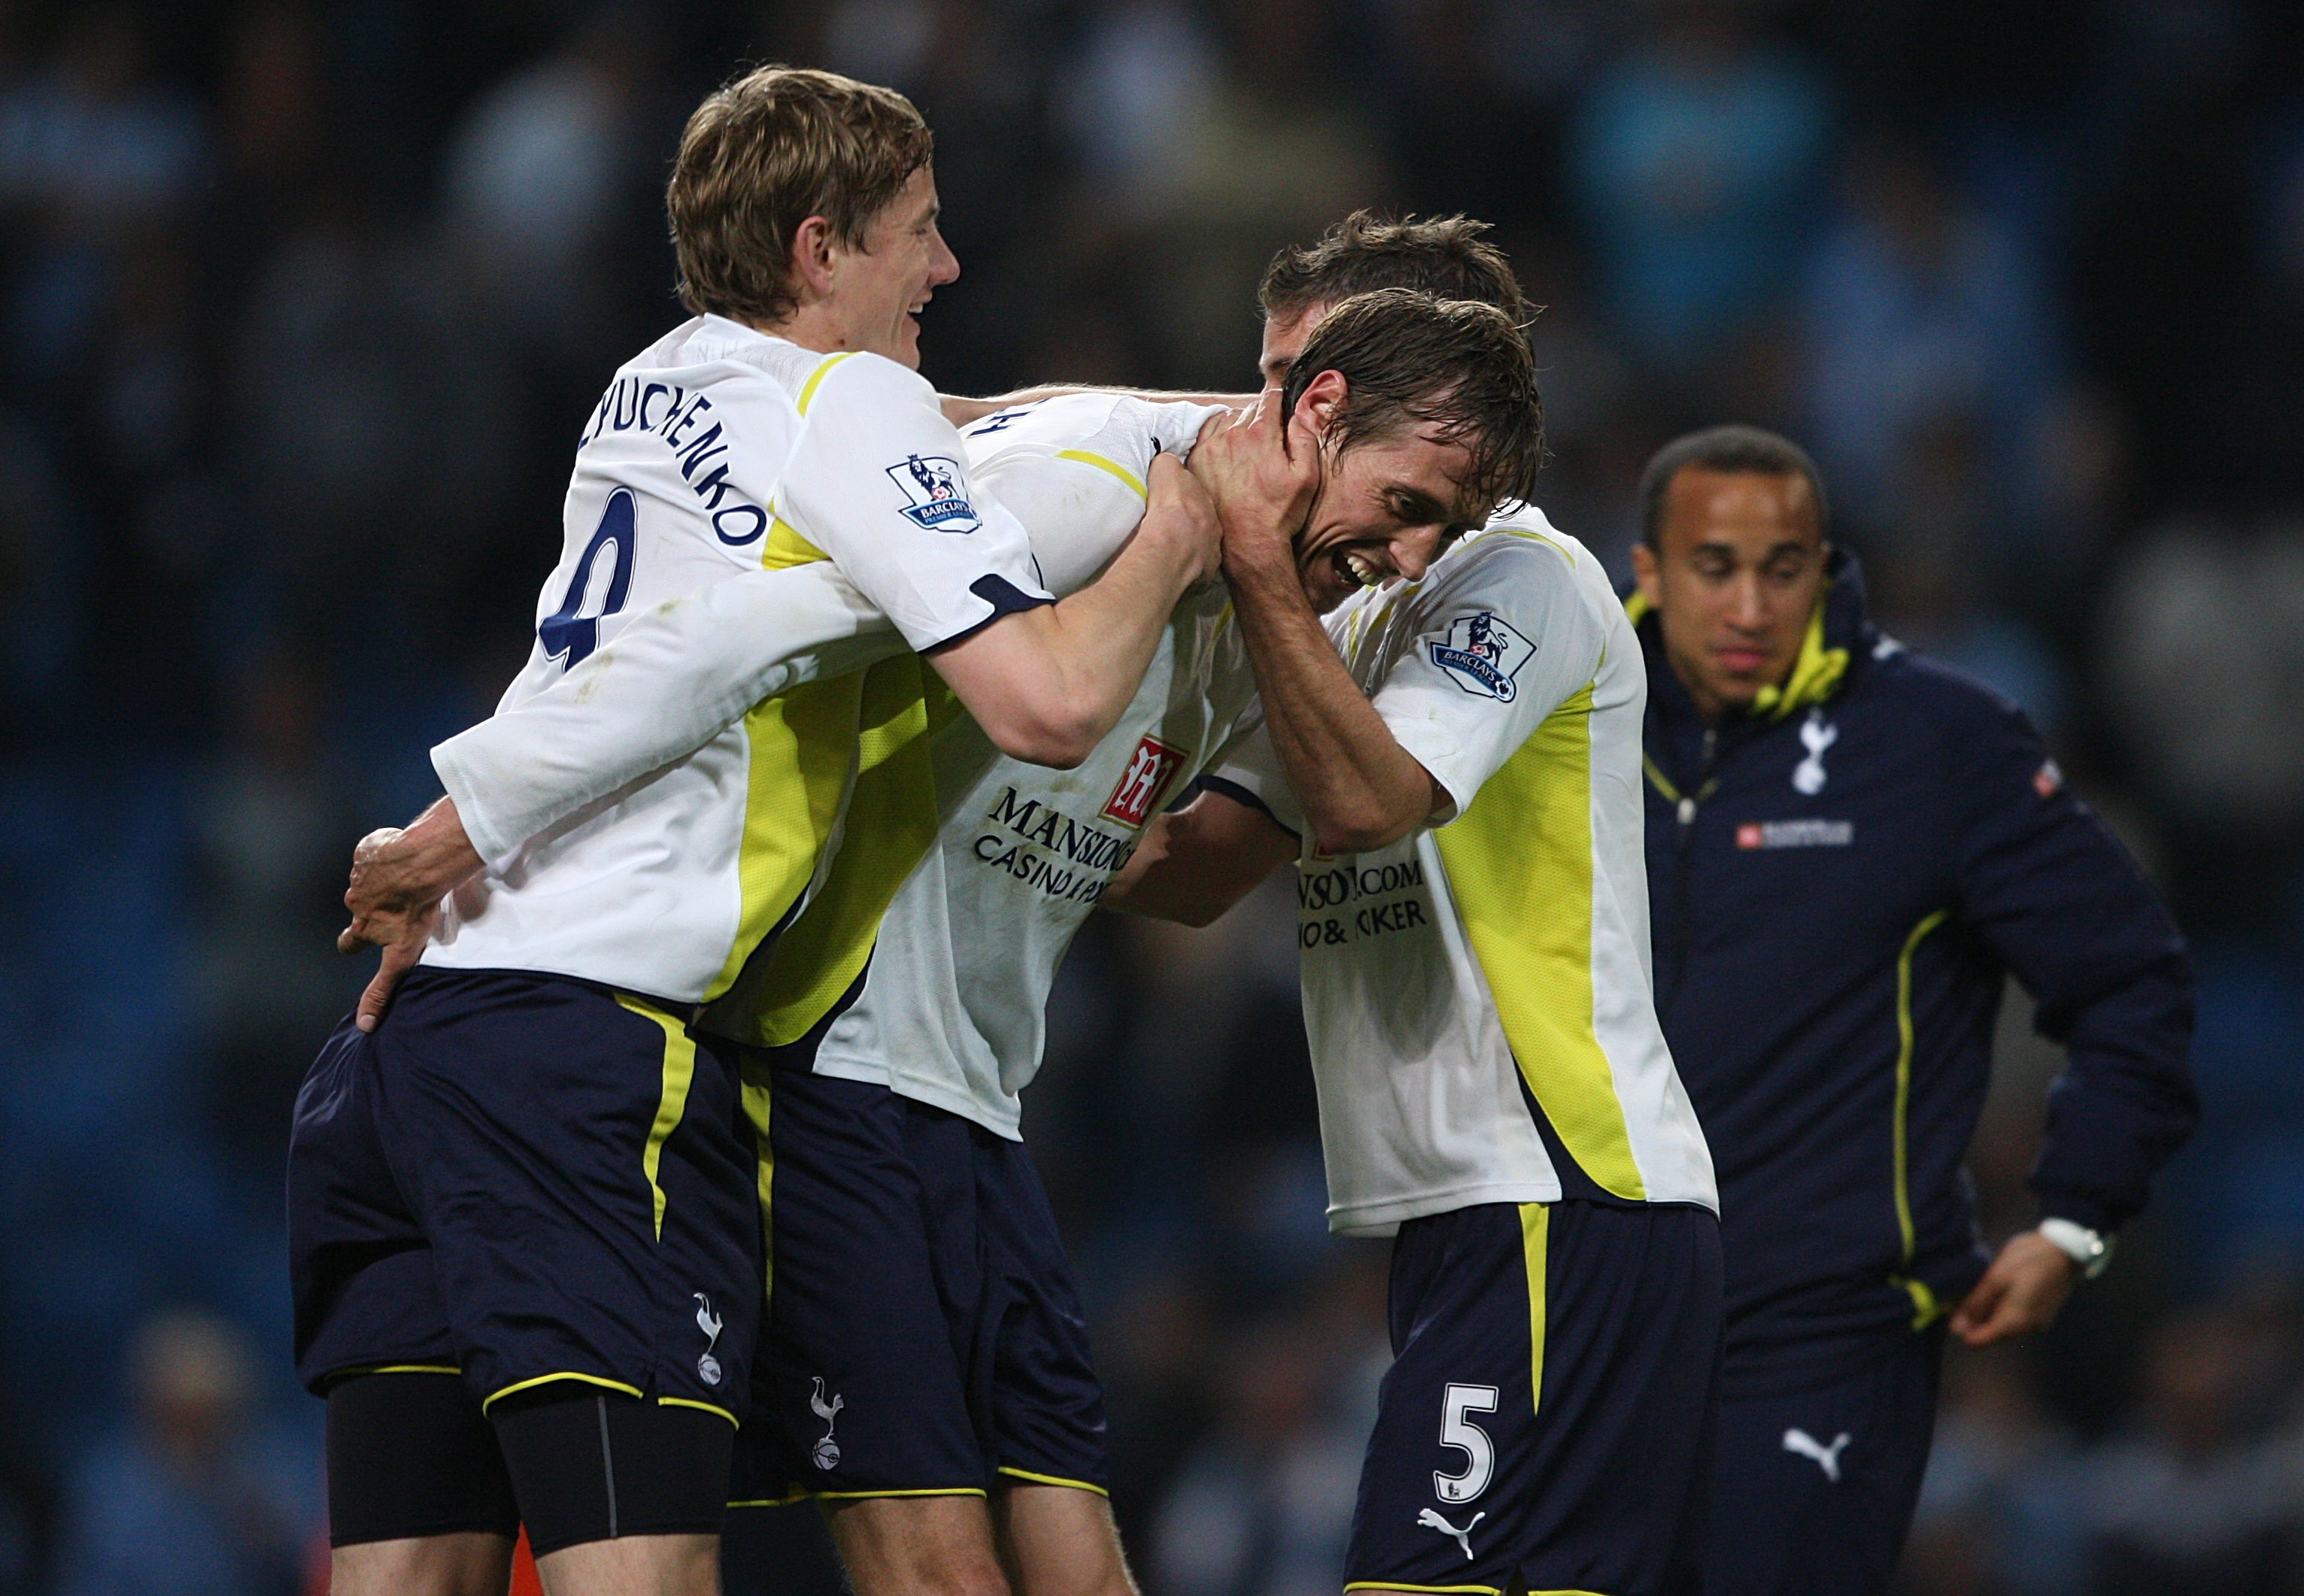 Crouch mobbed by Spurs teammates after scoring against City. Image: PA Images